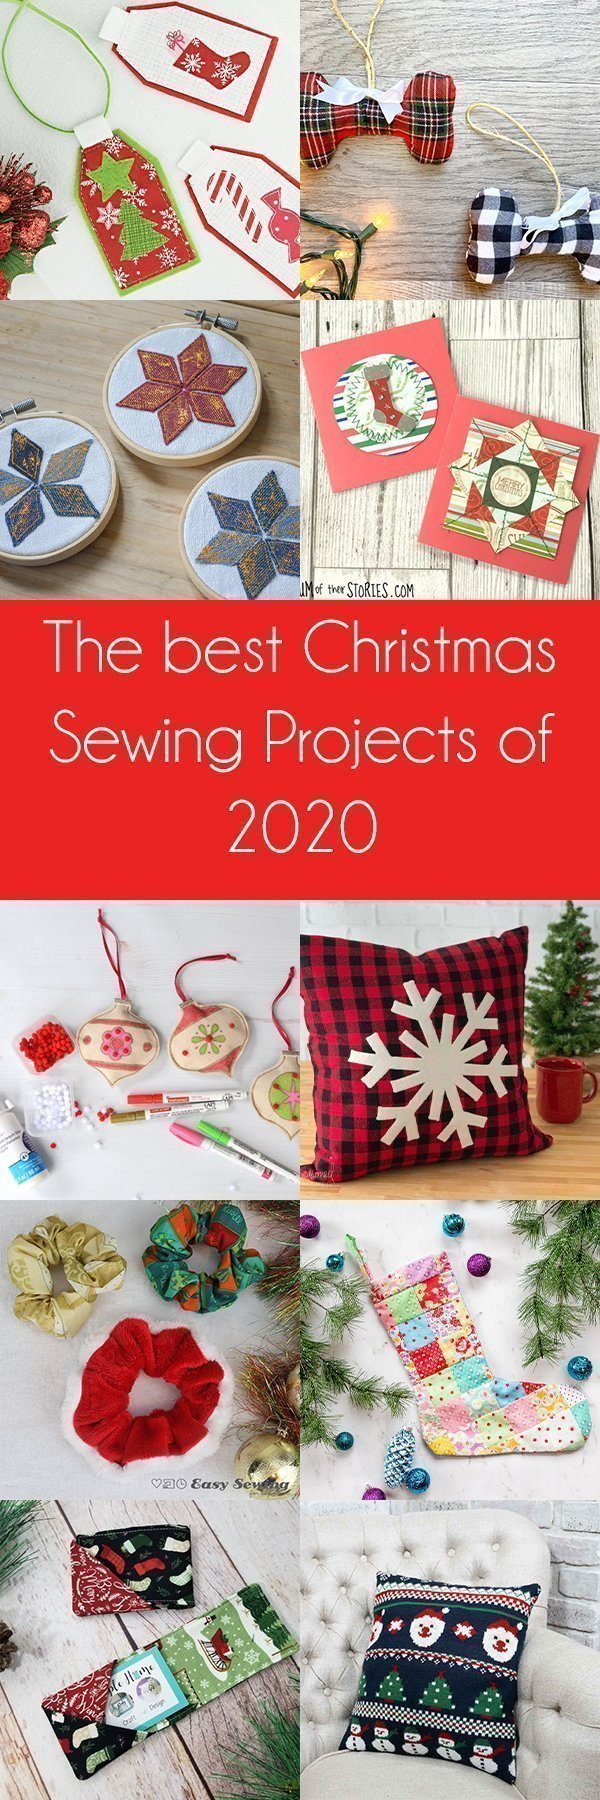 The best sewing projects of 2020